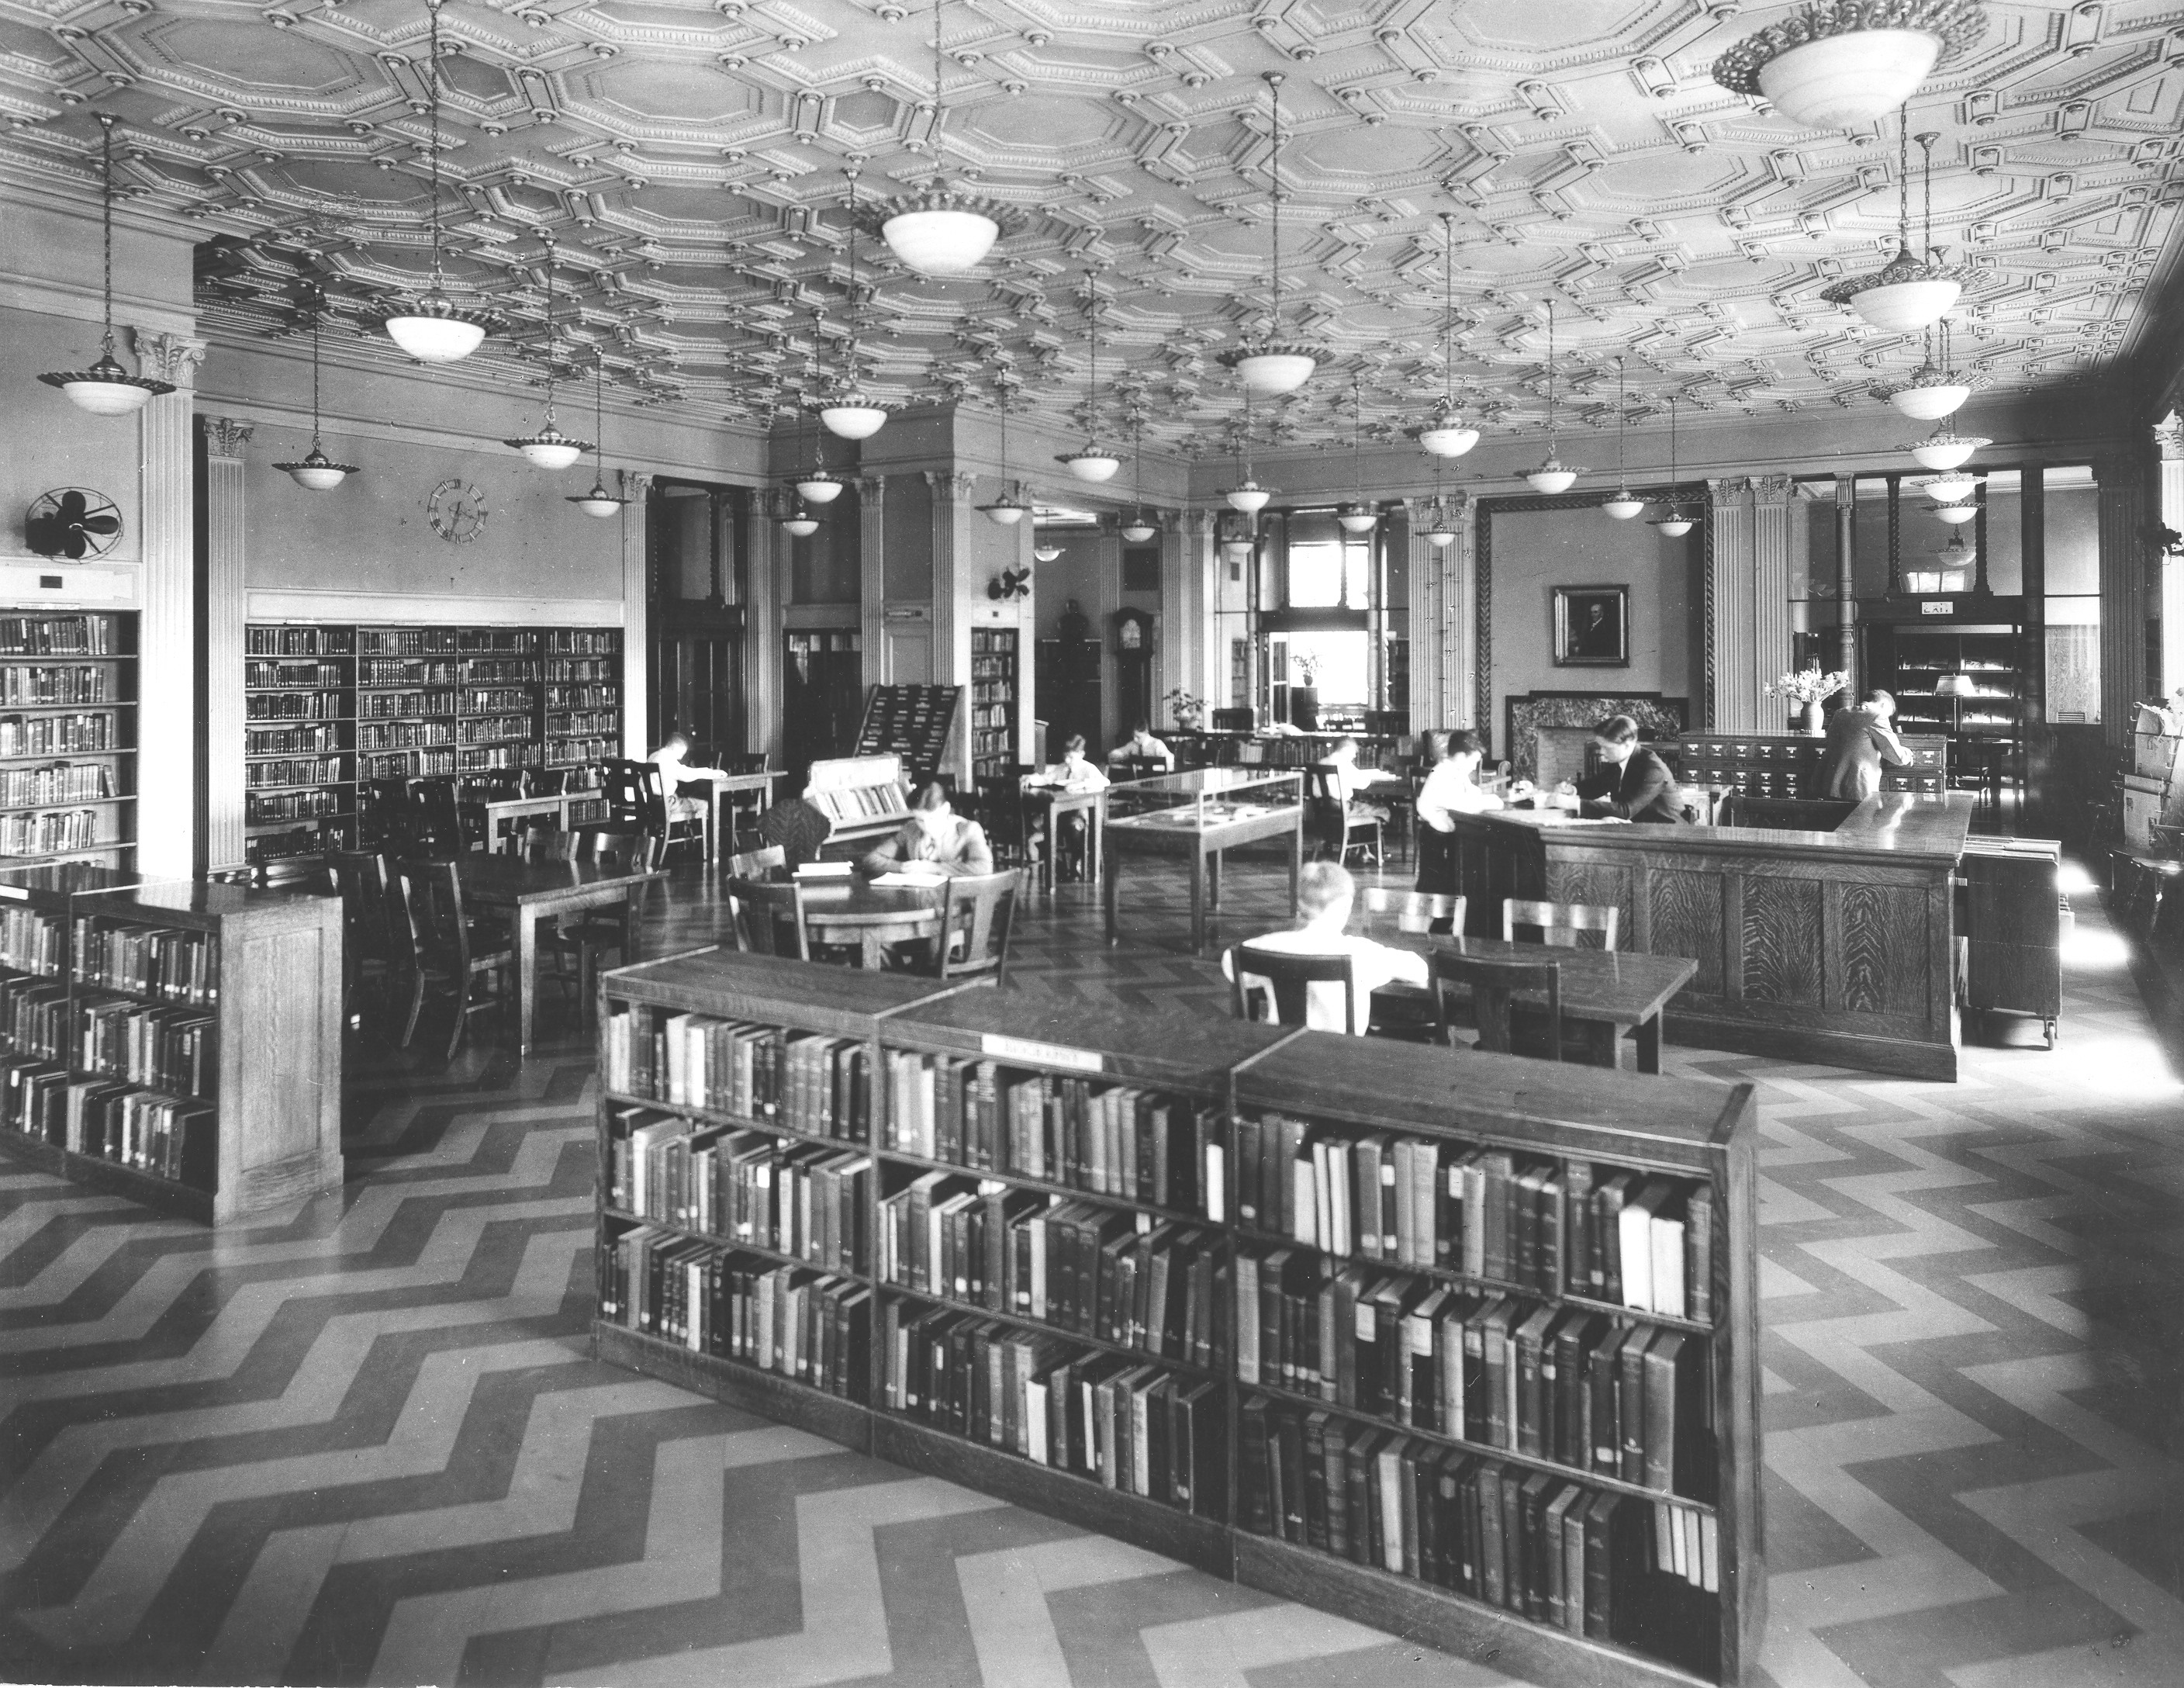 Library second floor